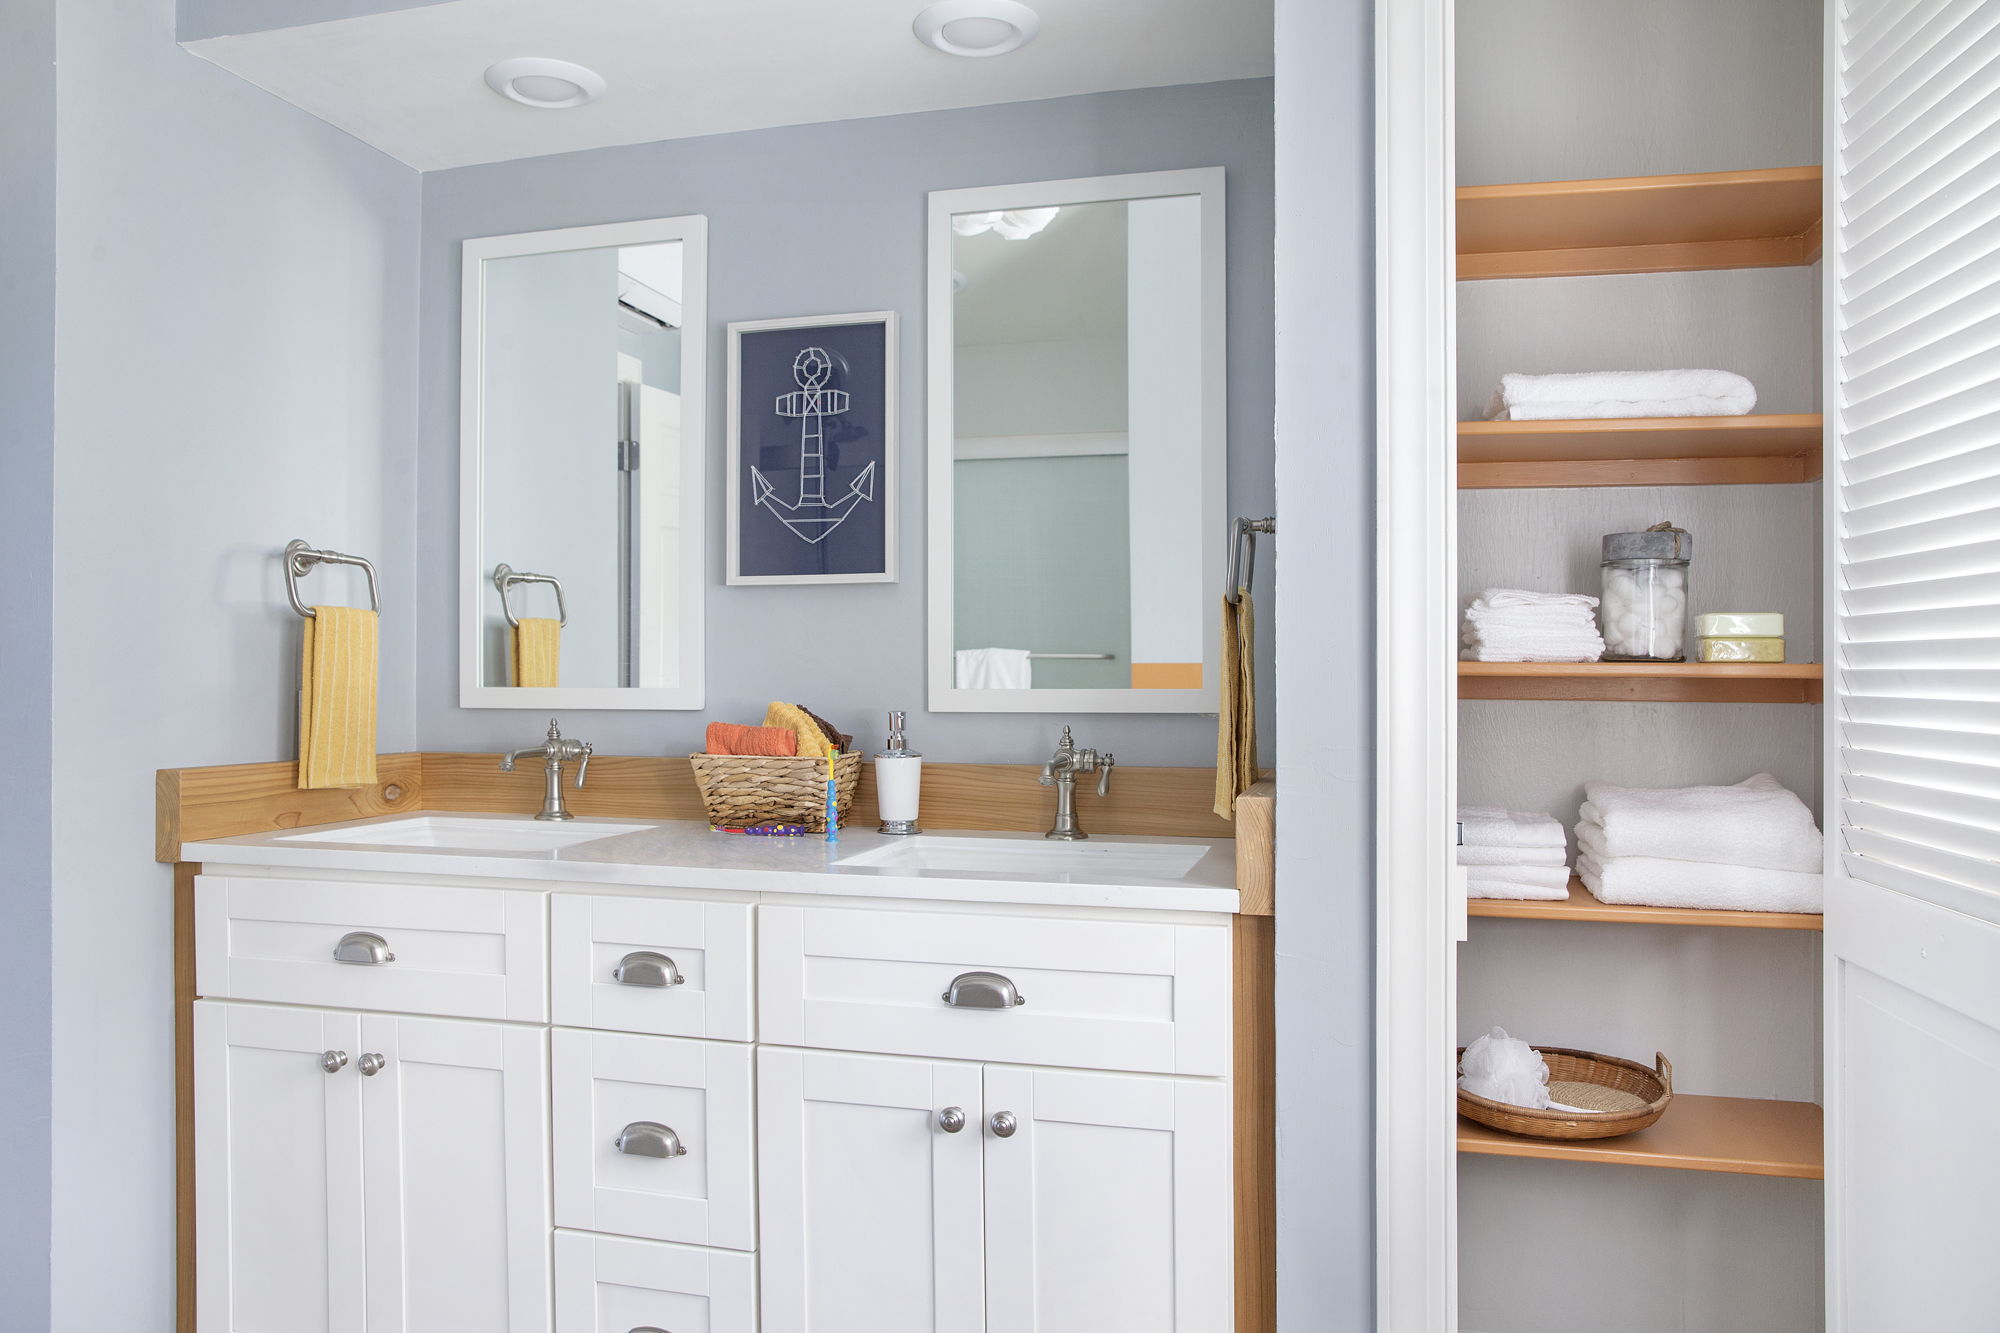 Jacquard® mirror     Memoirs® sink    Artifacts® faucet    Solid/Expressions® vanity top    Artifacts towel ring      A dual-sink vanity with ample storage is ideal for siblings getting ready for school together. Faucets and cabinet knobs in brushed nickel along with vintage details add subtle charm.